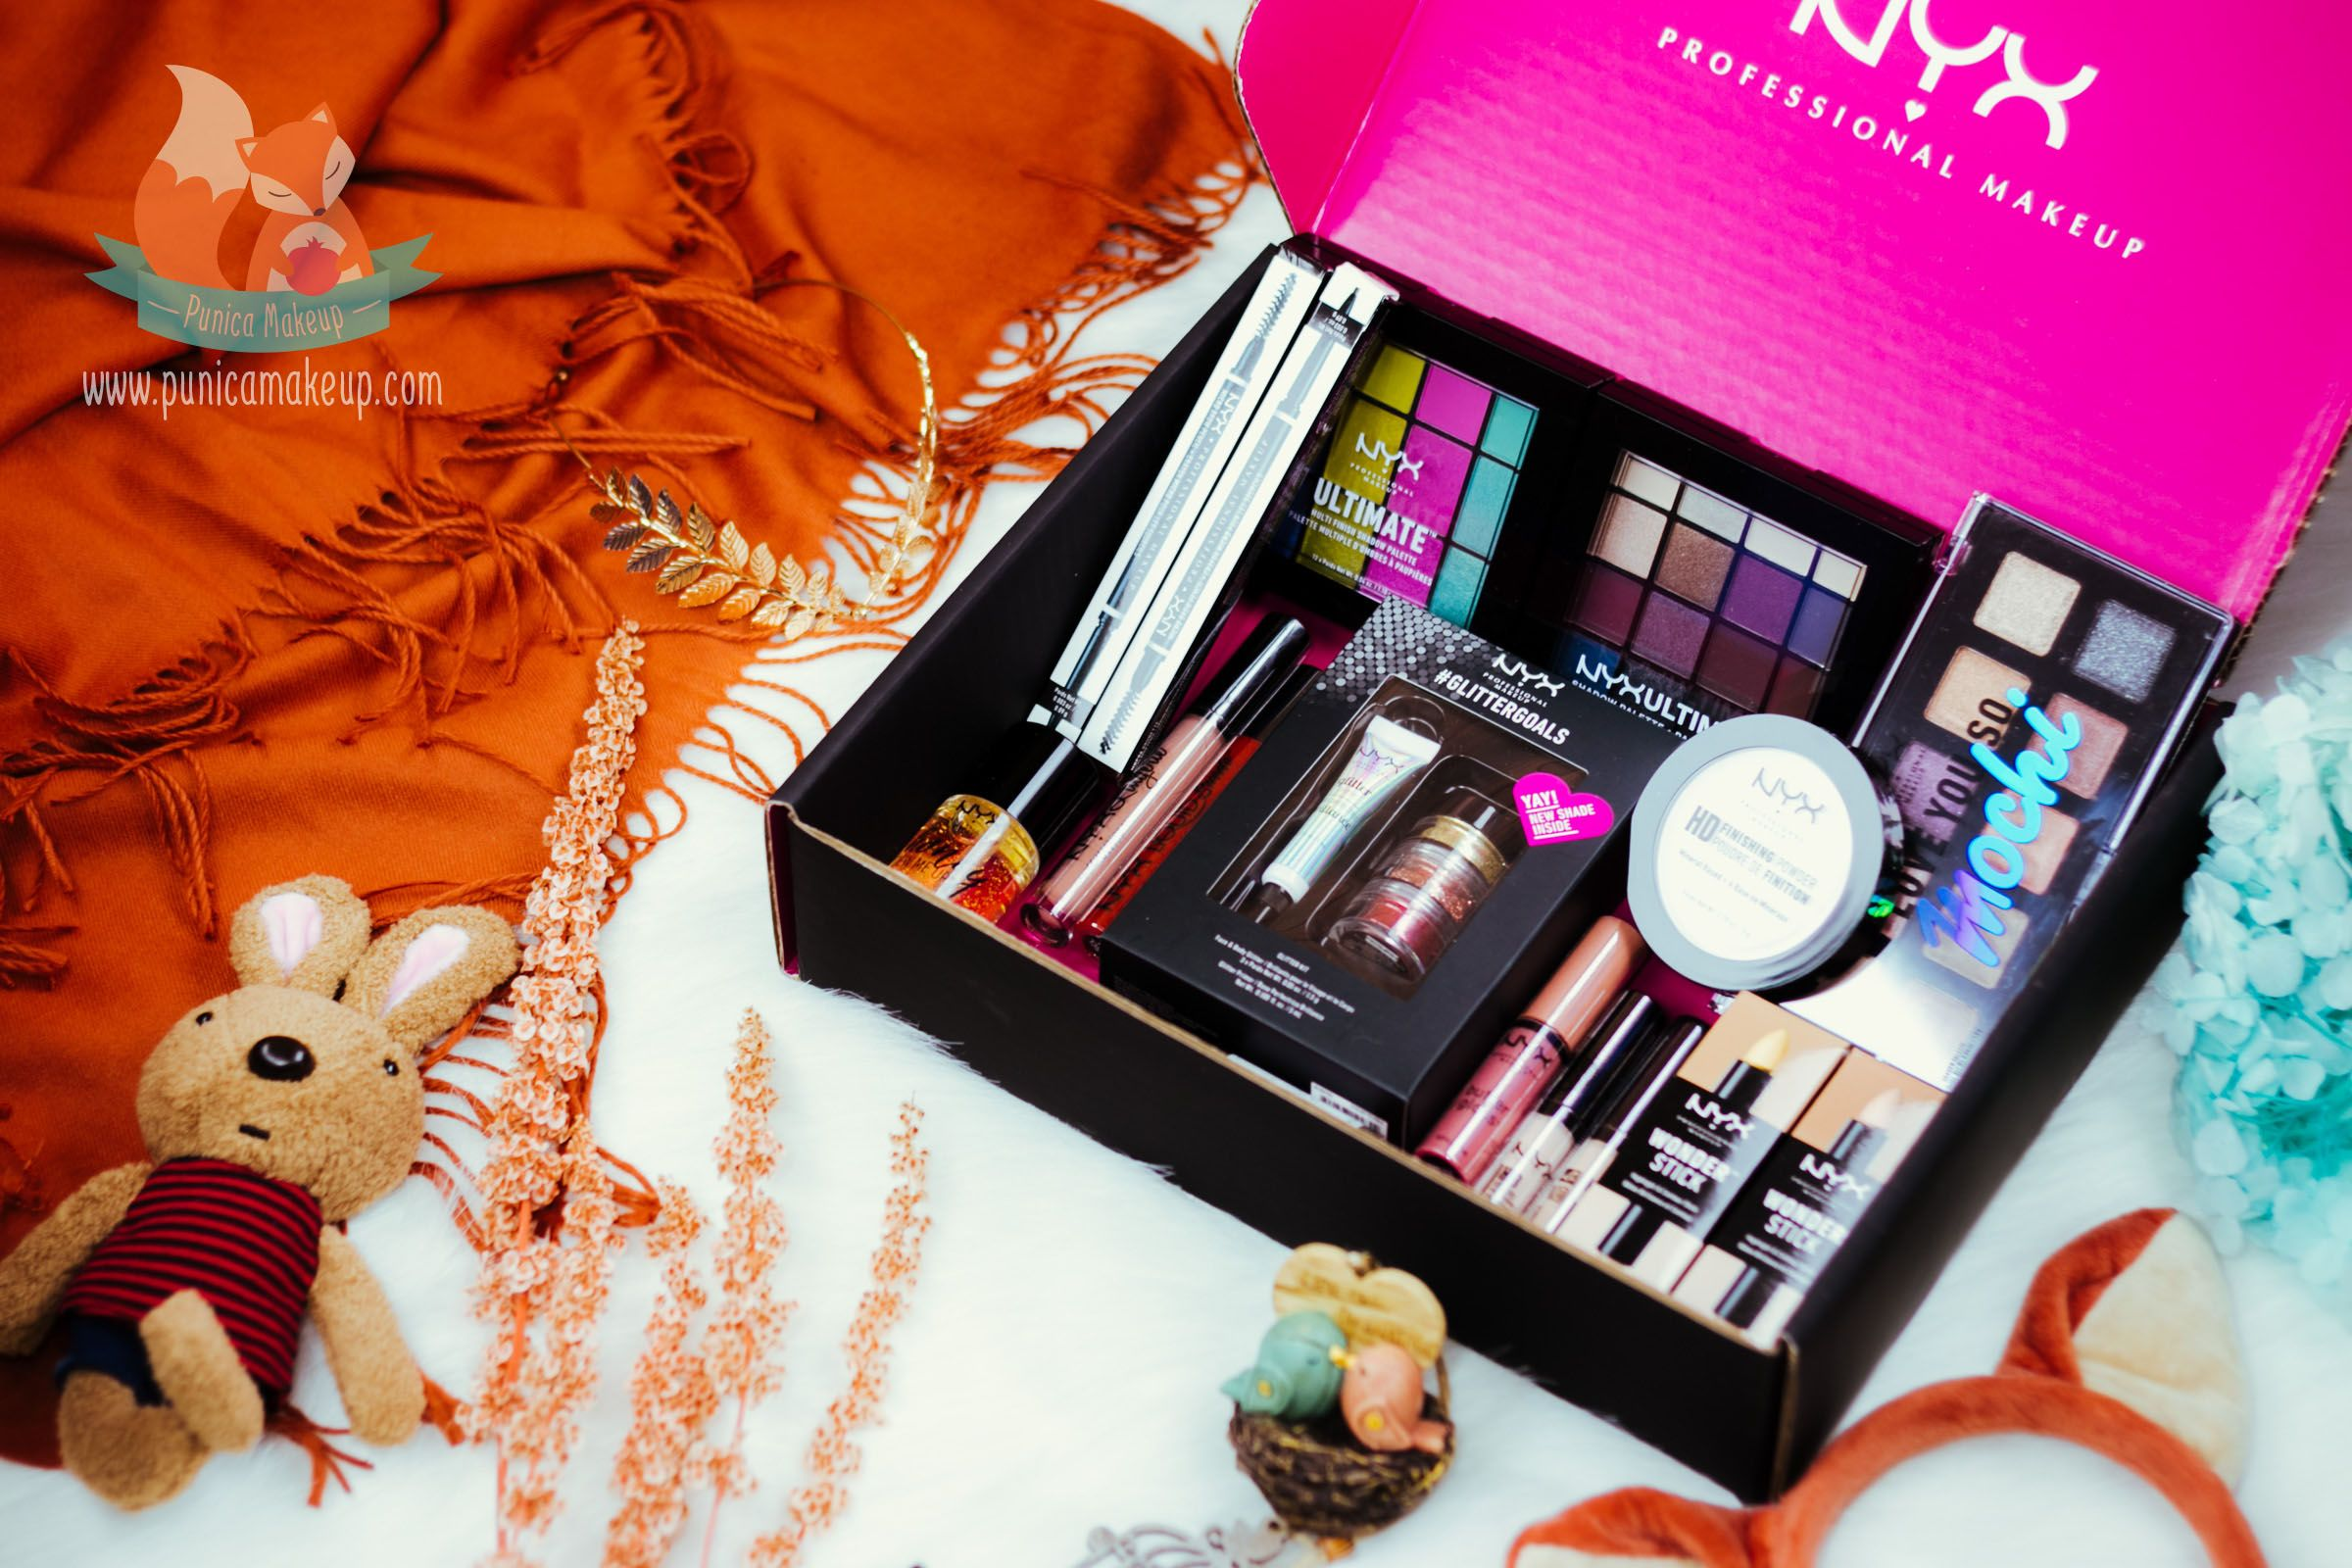 NYX Professional Makeup Limited Release Box Nyx